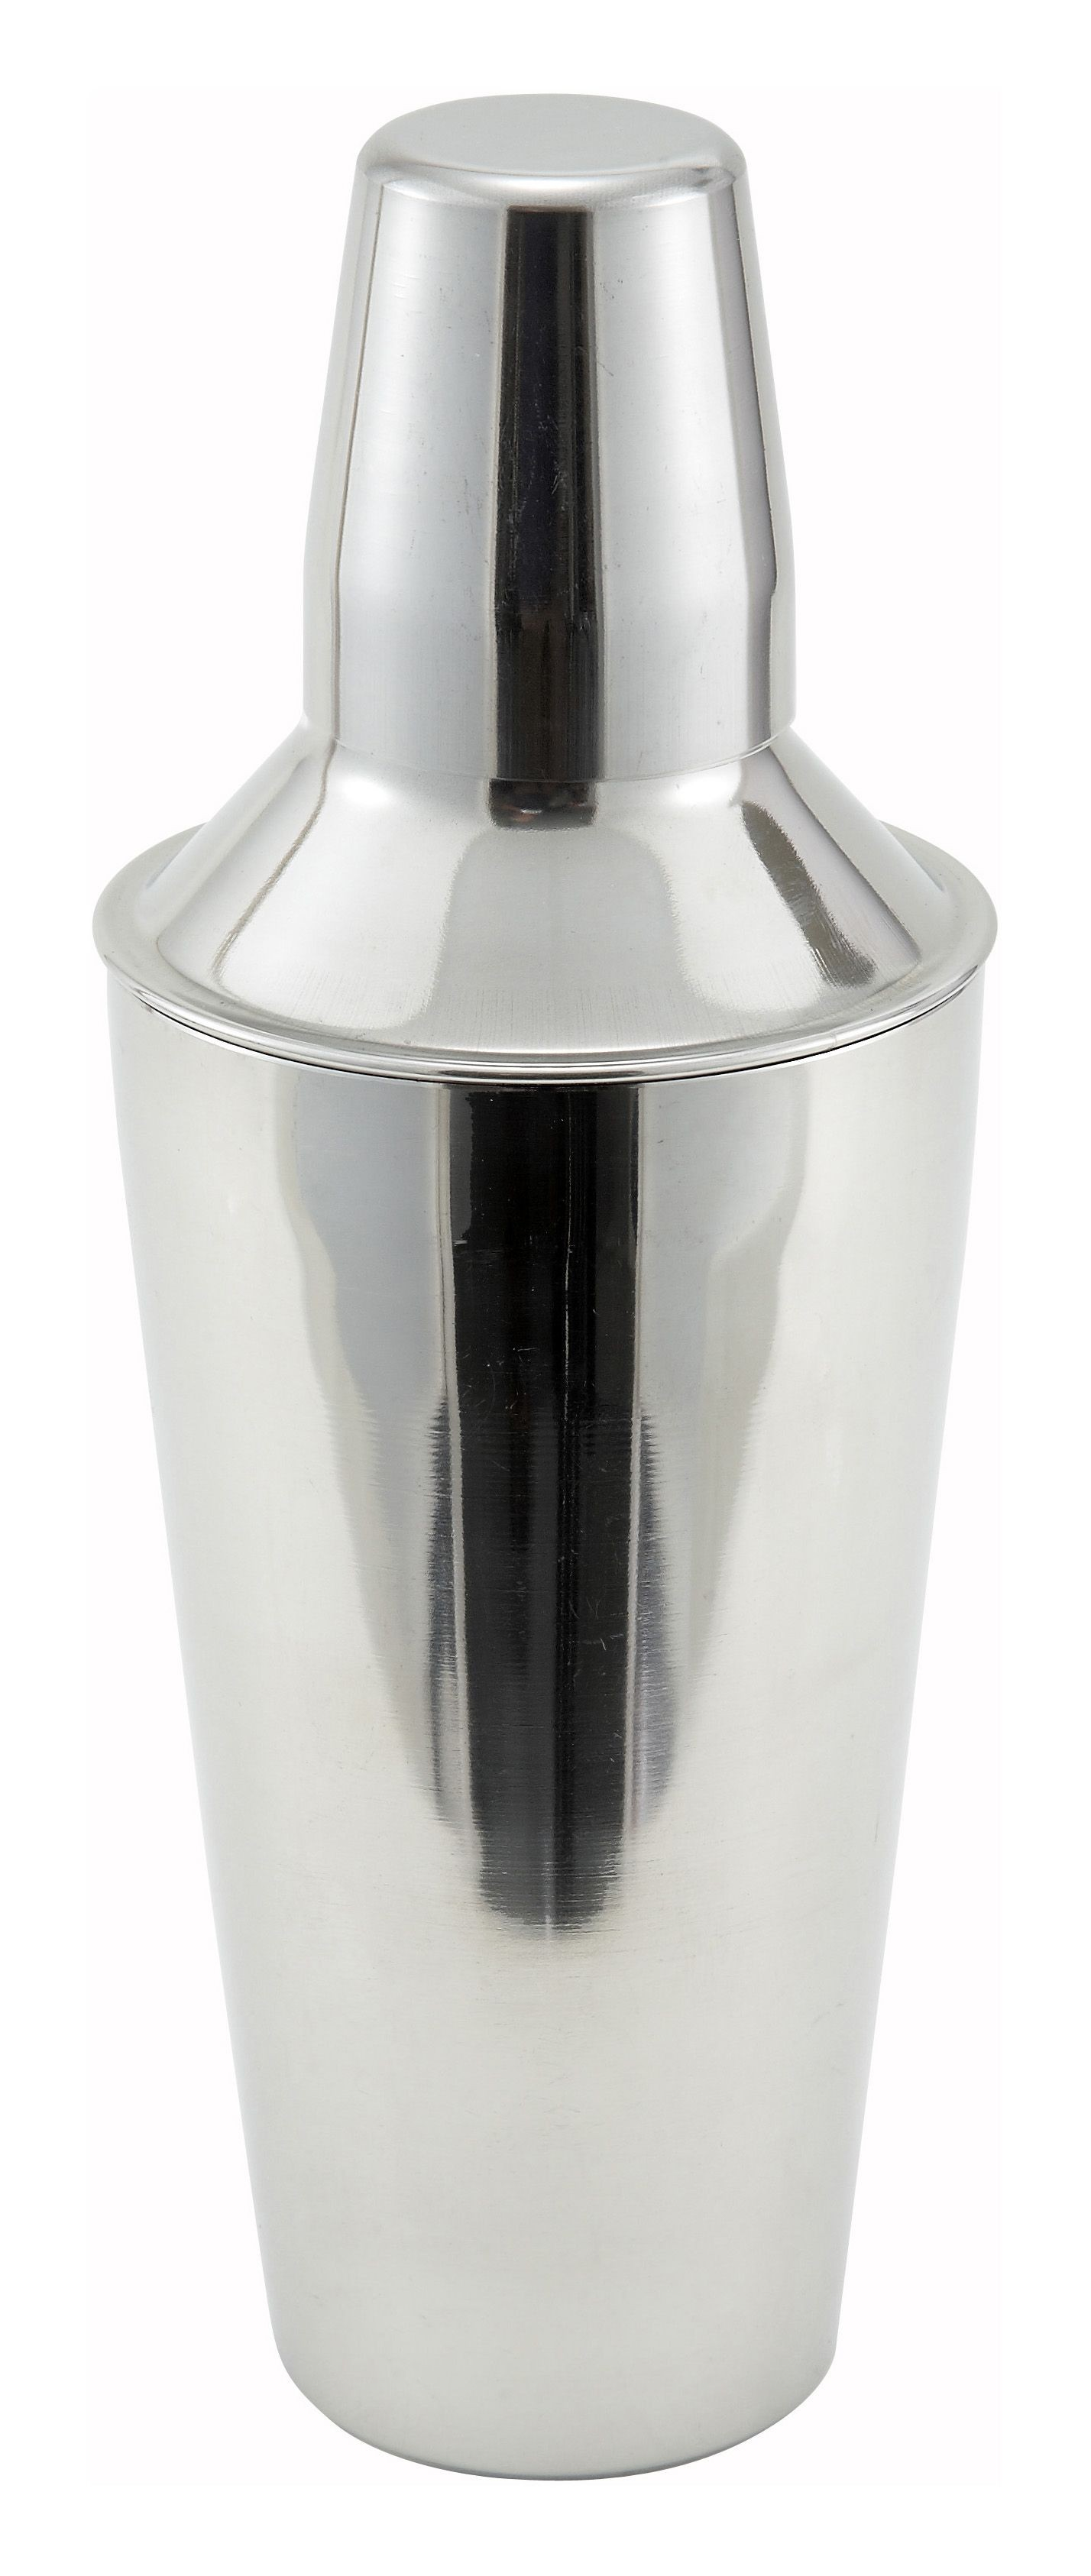 Winco BS-3P 3-Piece Stainless Steel 28 oz. Bar Shaker Set